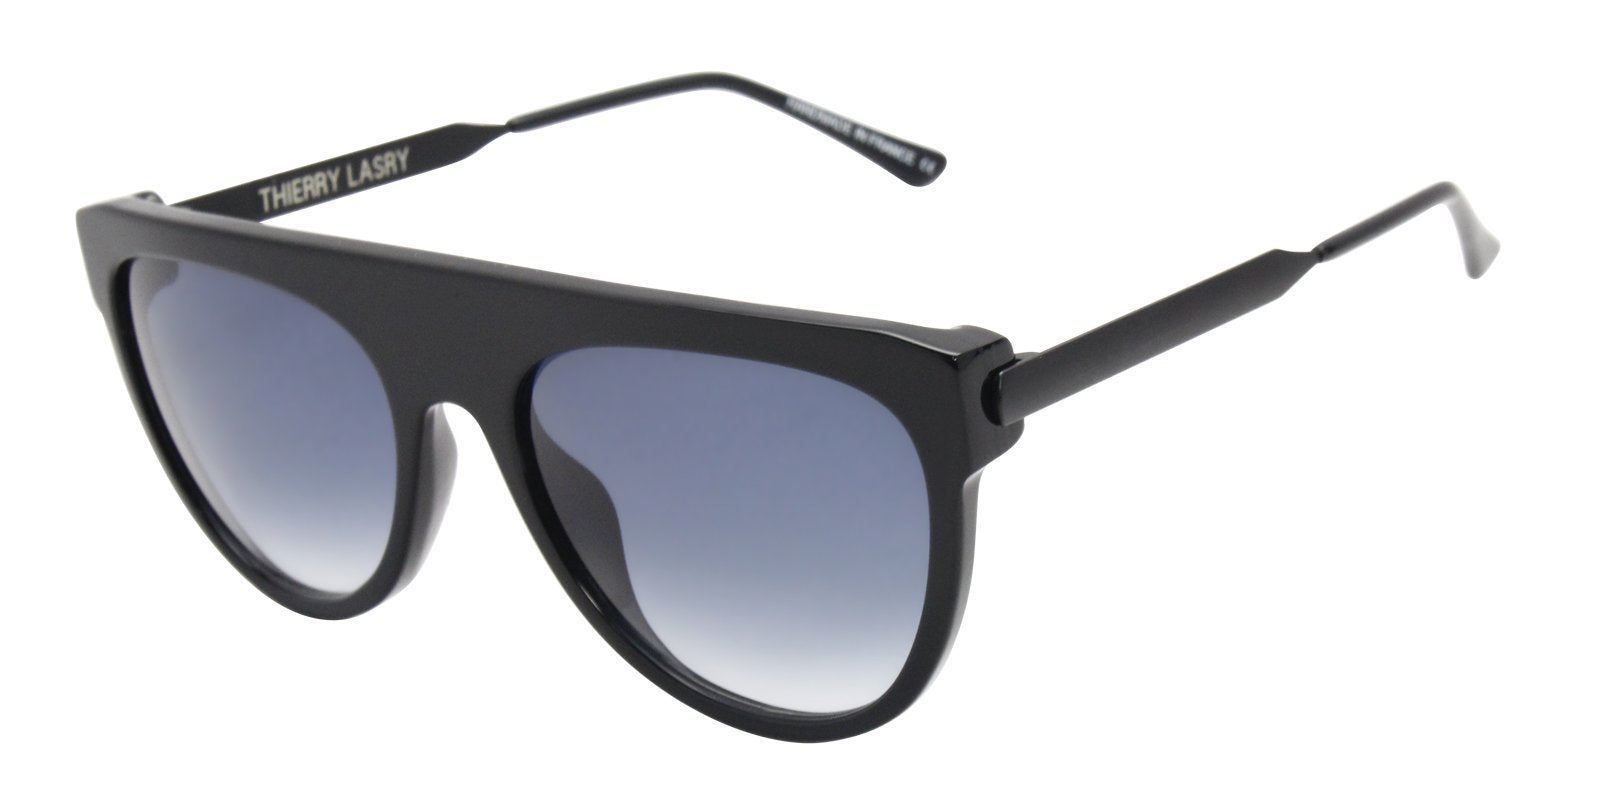 Thierry Lasry - Vandaly Black Oval Women Sunglasses - 57mm-Sunglasses-Designer Eyes